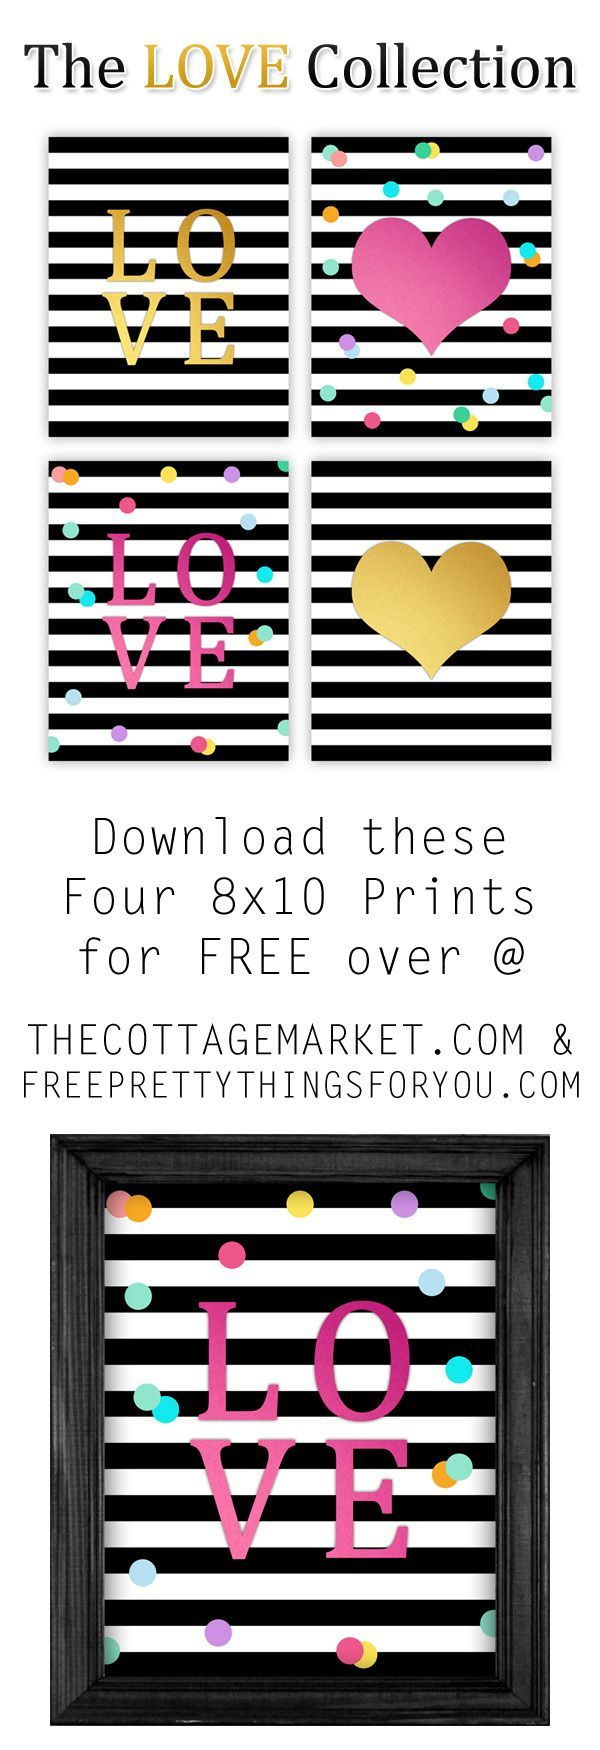 thelovecollection-TOWER printables